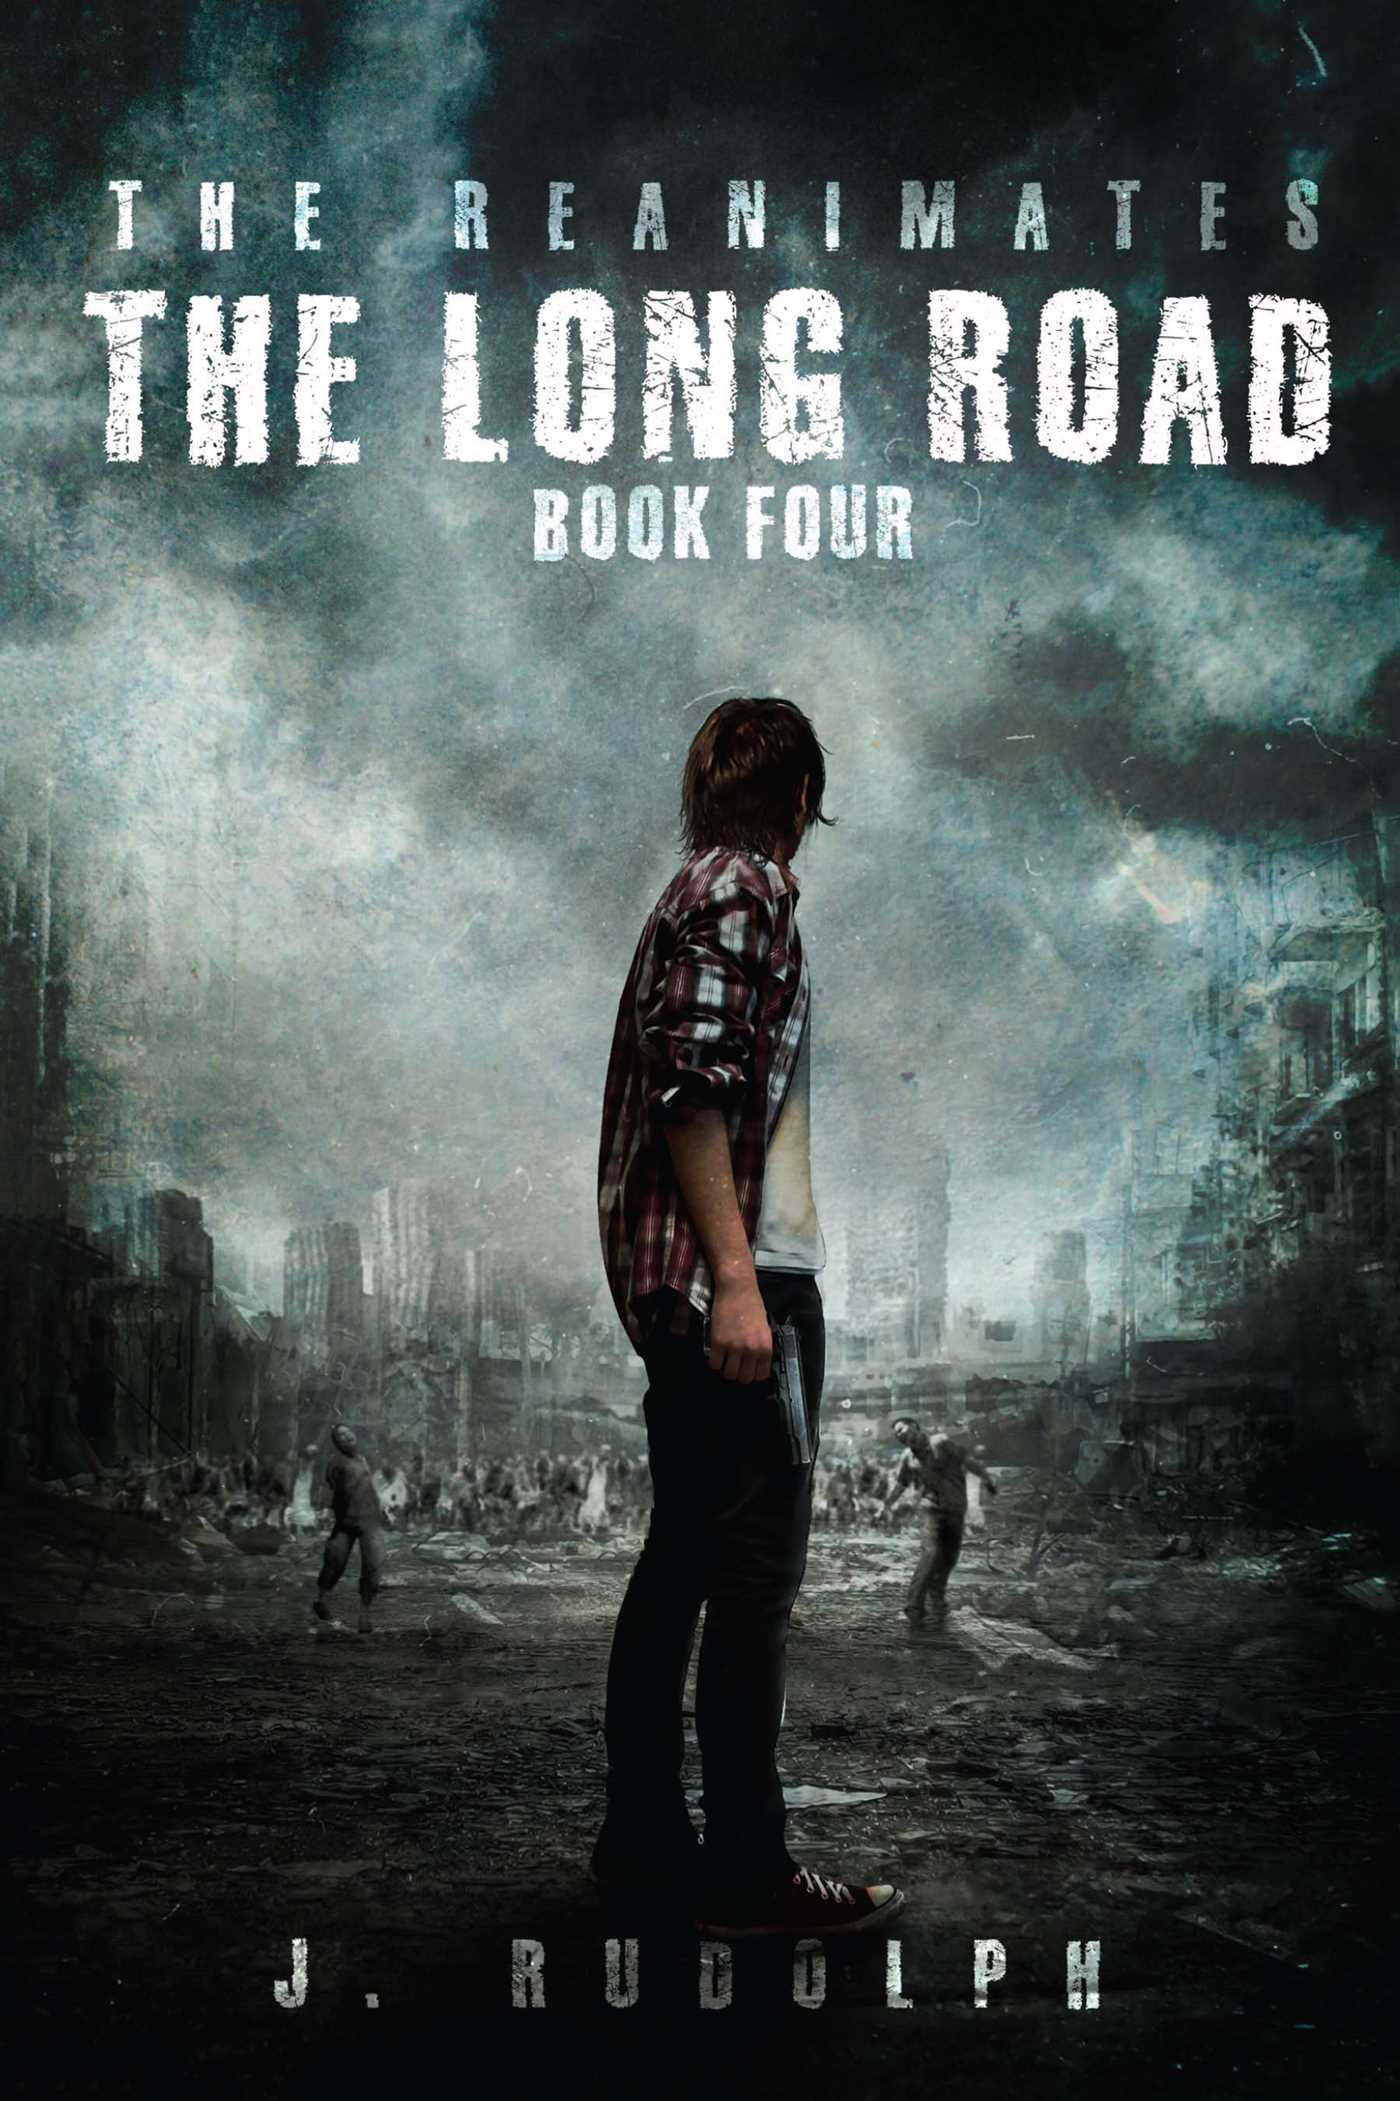 The long road 9781682612118 hr